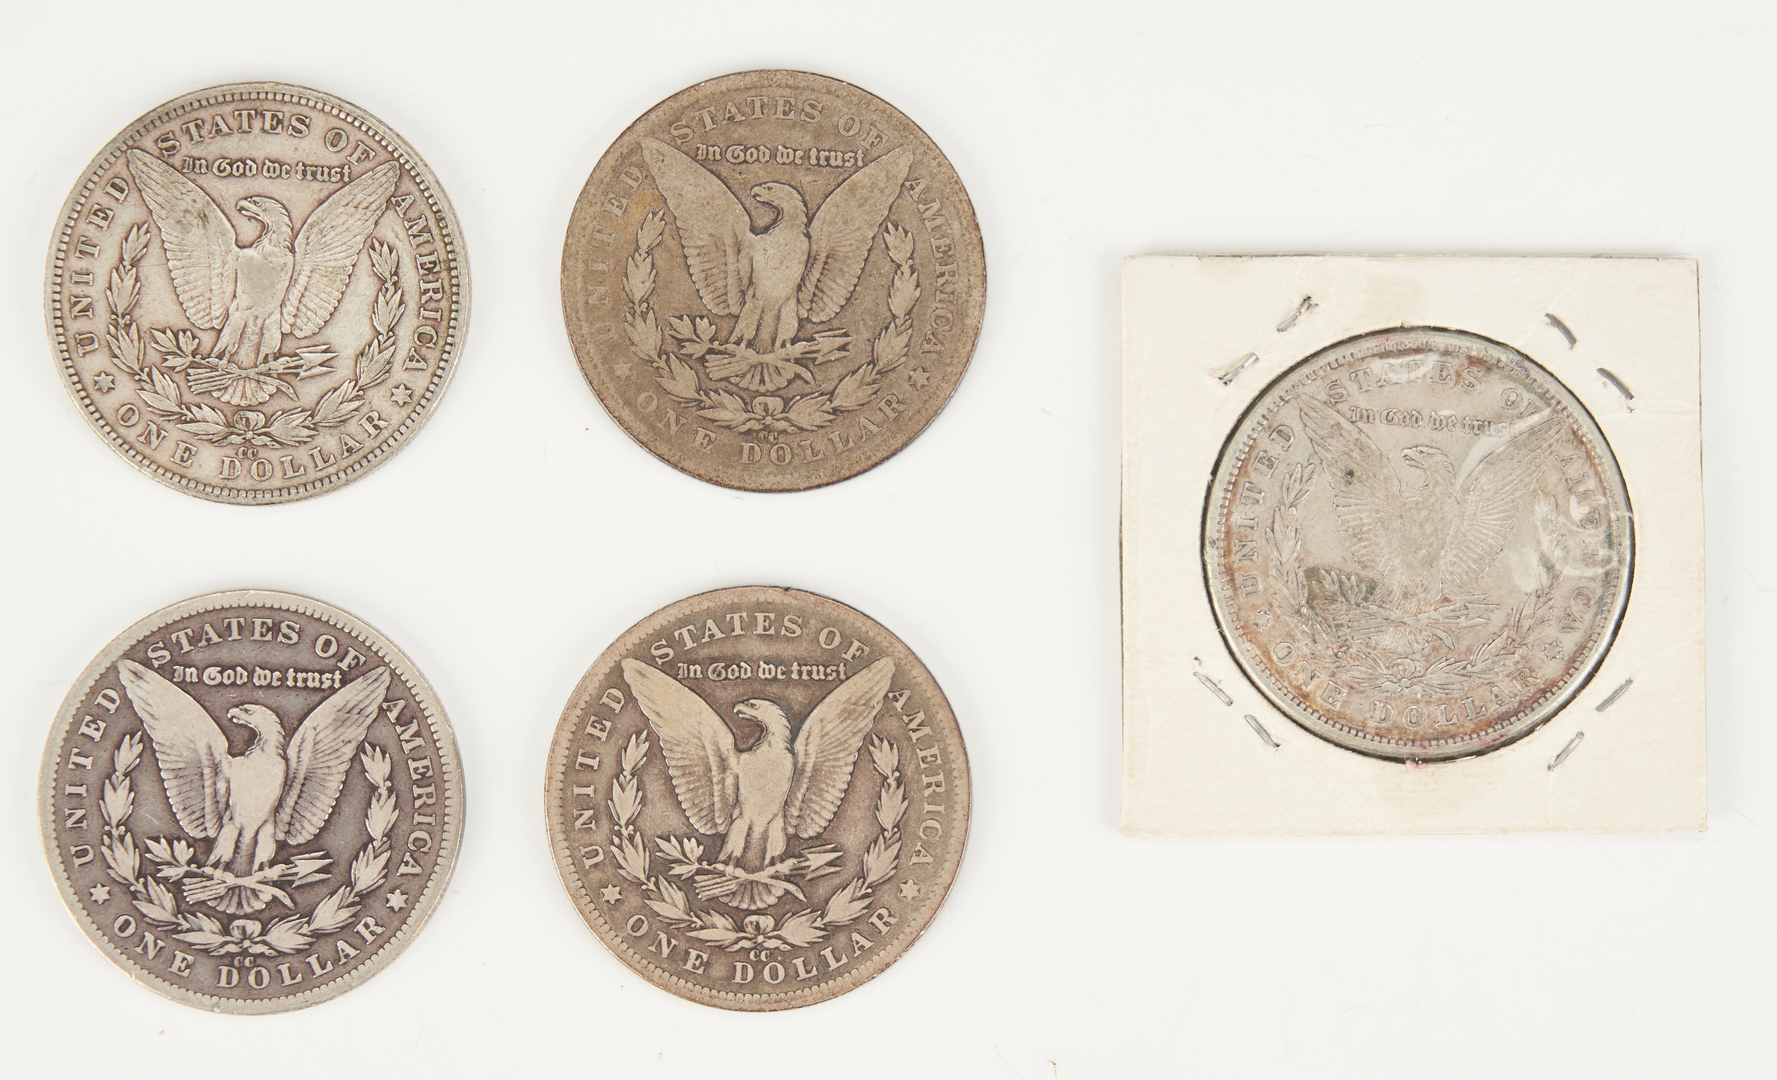 Lot 1162: 5 Morgan Silver Dollars, incl. CC, 8 Tail Feathers